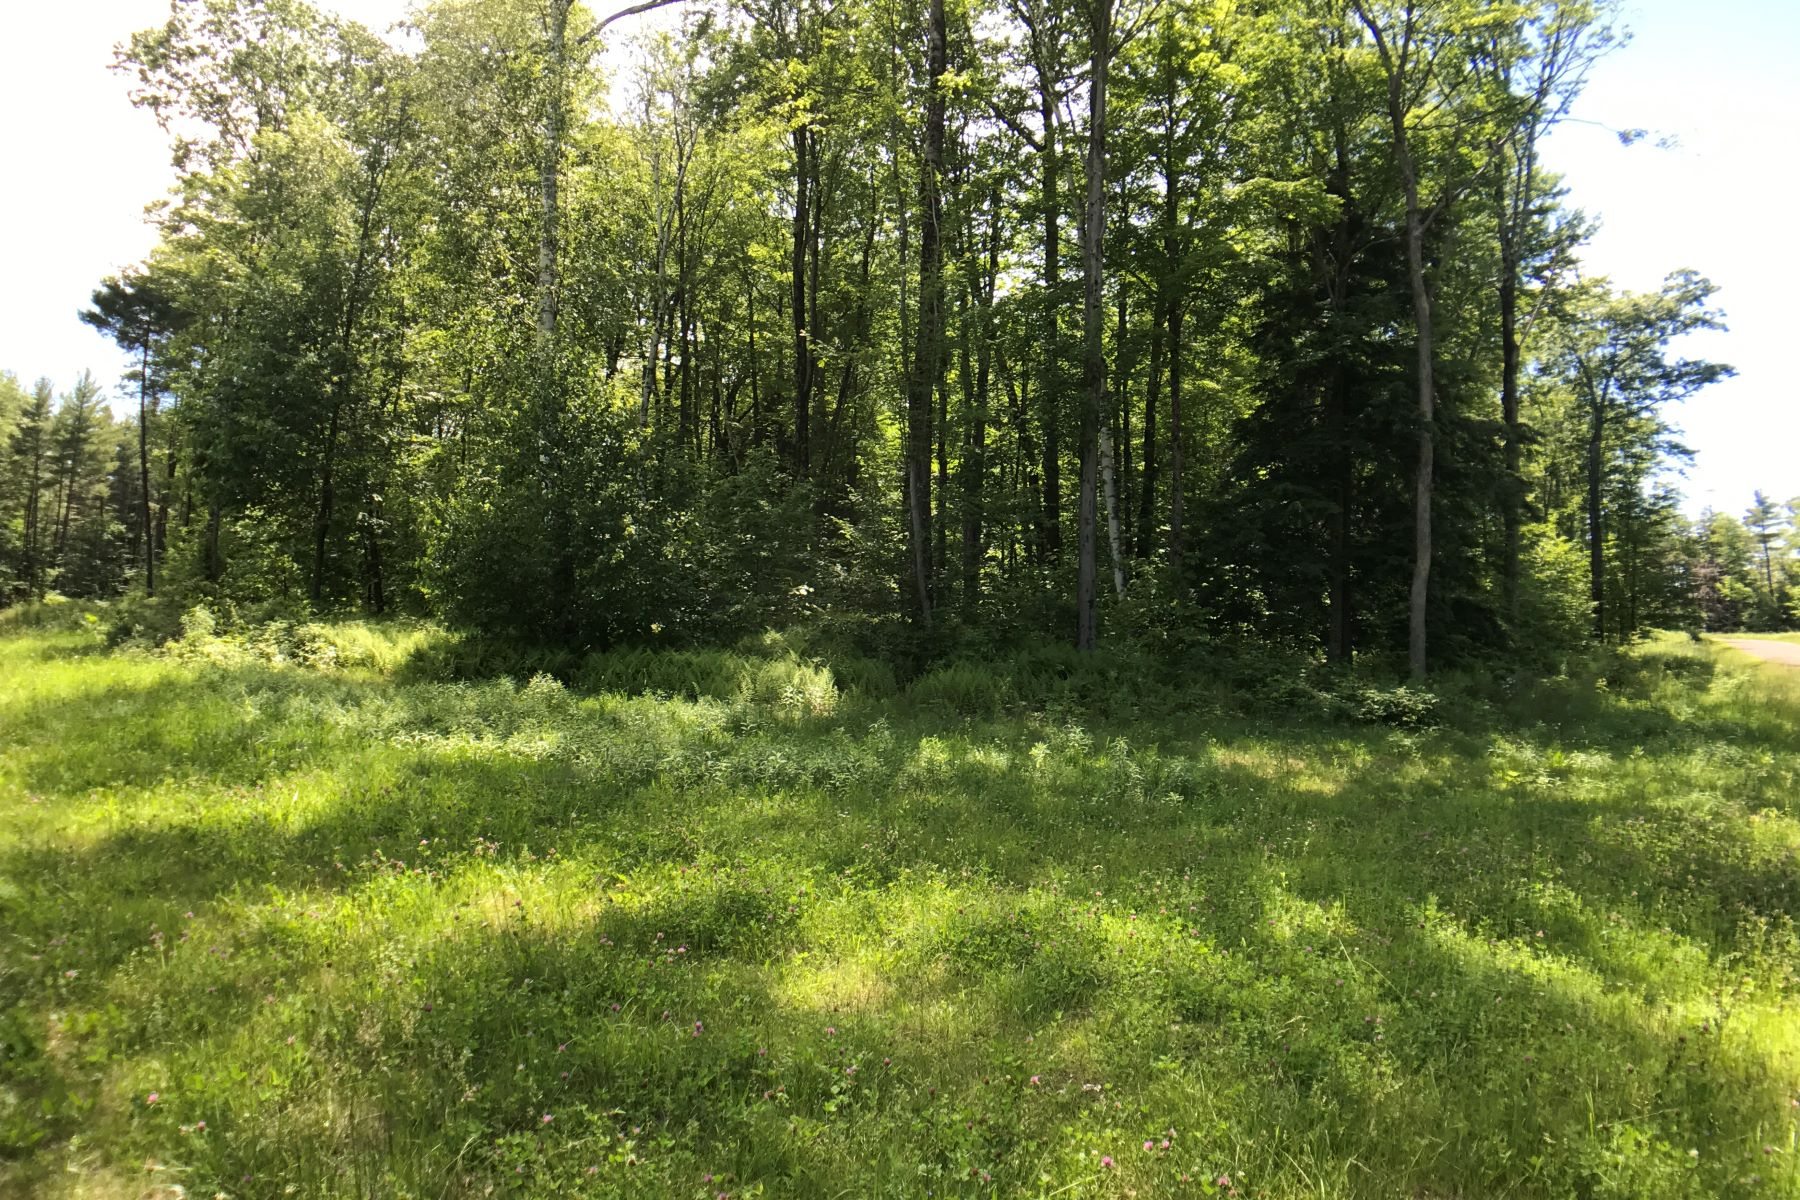 Земля для того Продажа на Affordable Ready-to-Build Parcel with Shared Waterfront Access Lot #2, Moose Dr Lee, Массачусетс 01238 Соединенные Штаты